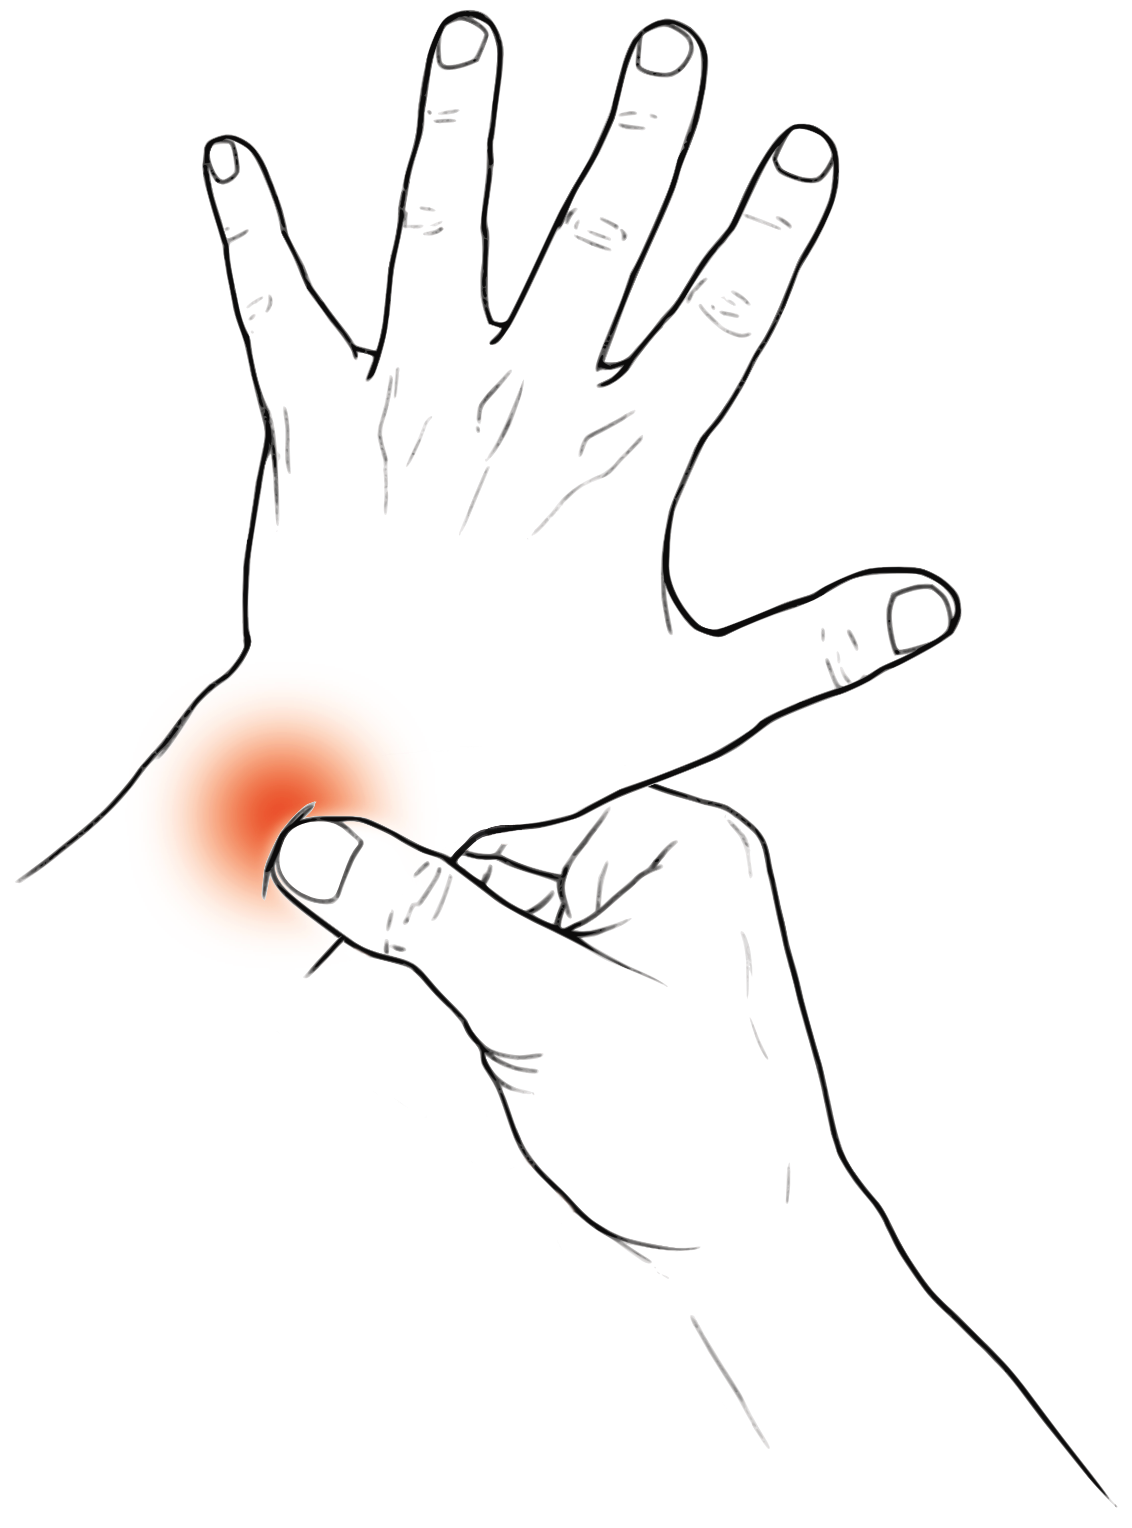 Tendonitis Carpal Tunnel Repetitive Strain Injury The Art of Dexterity